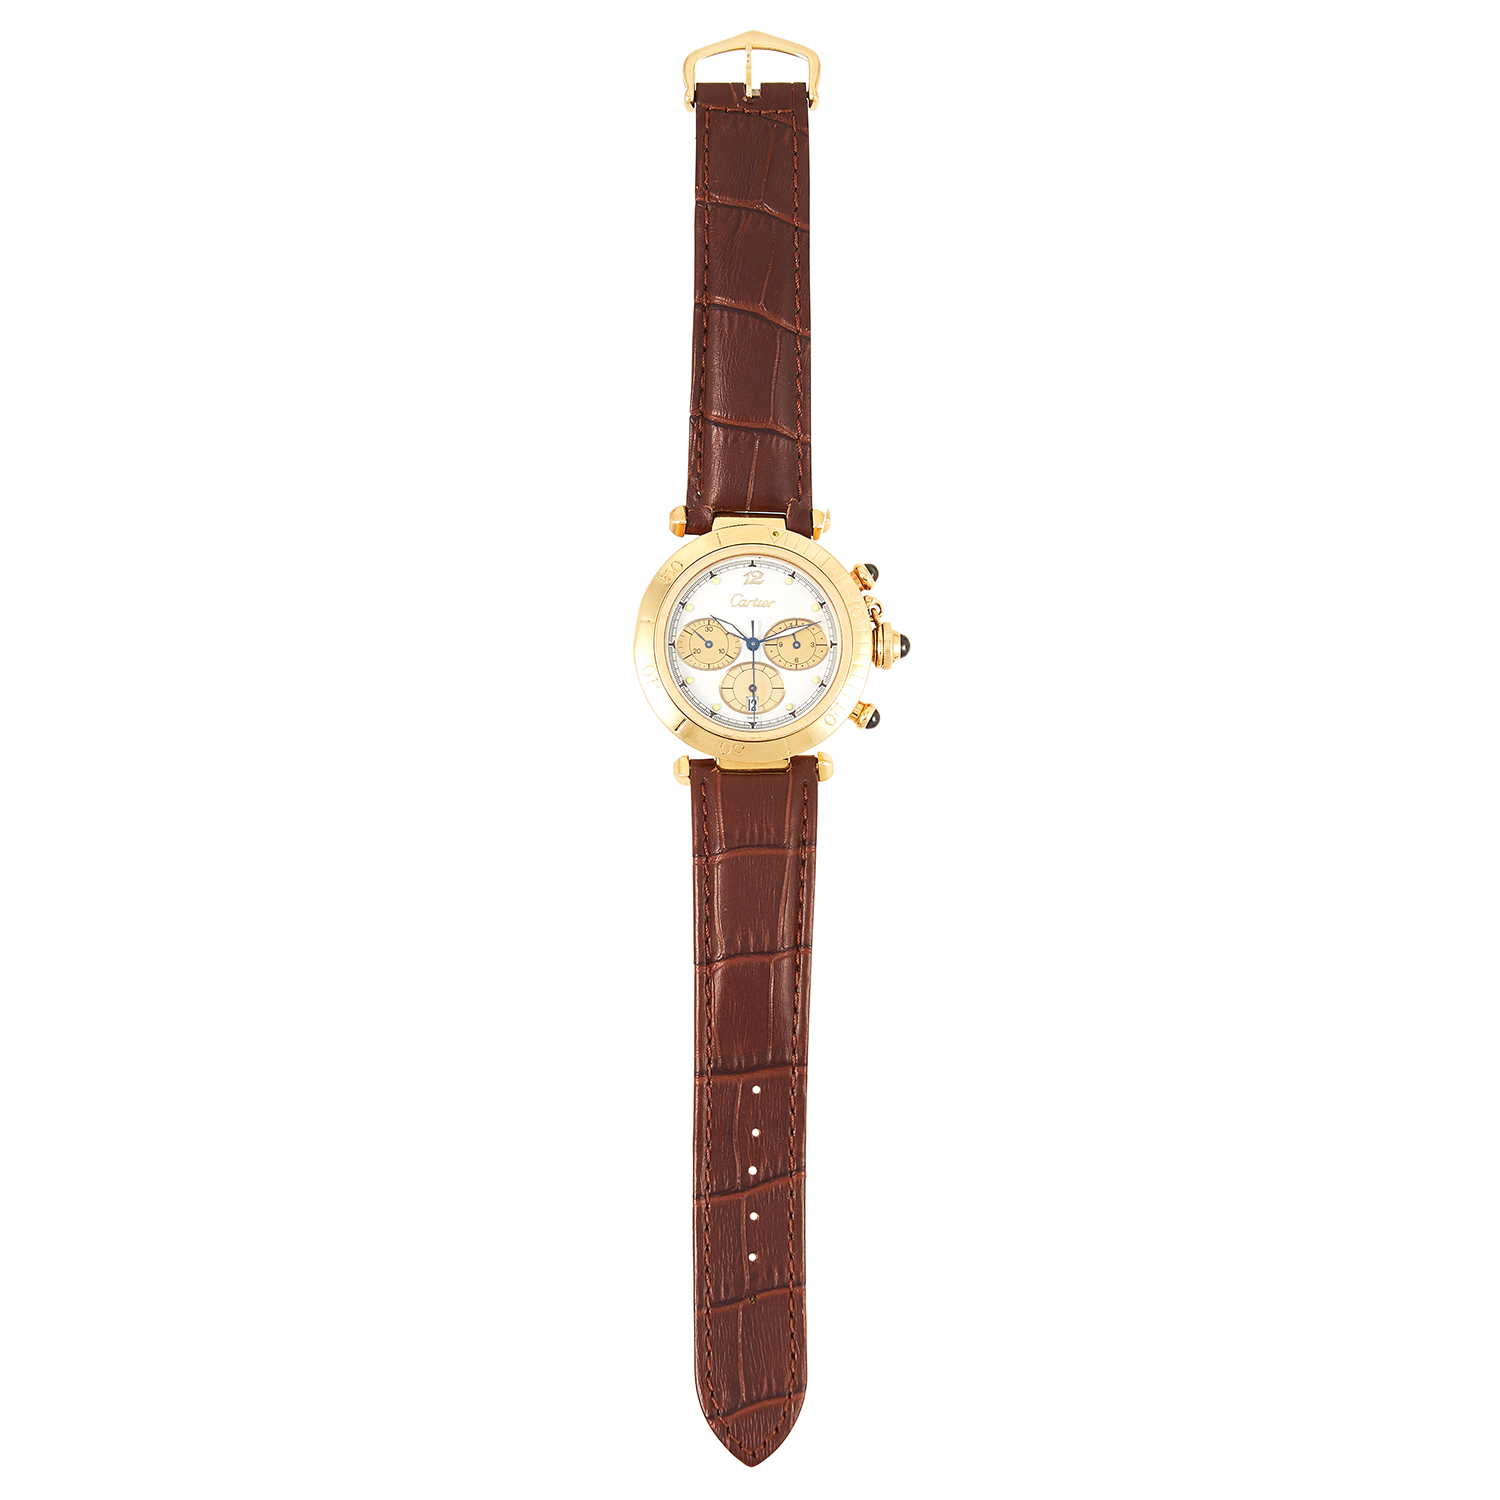 Los 105 - A 'PASHA DE CARTIER' MENS WATCH, CARTIER in 18ct yellow gold, with white dial in yellow gold